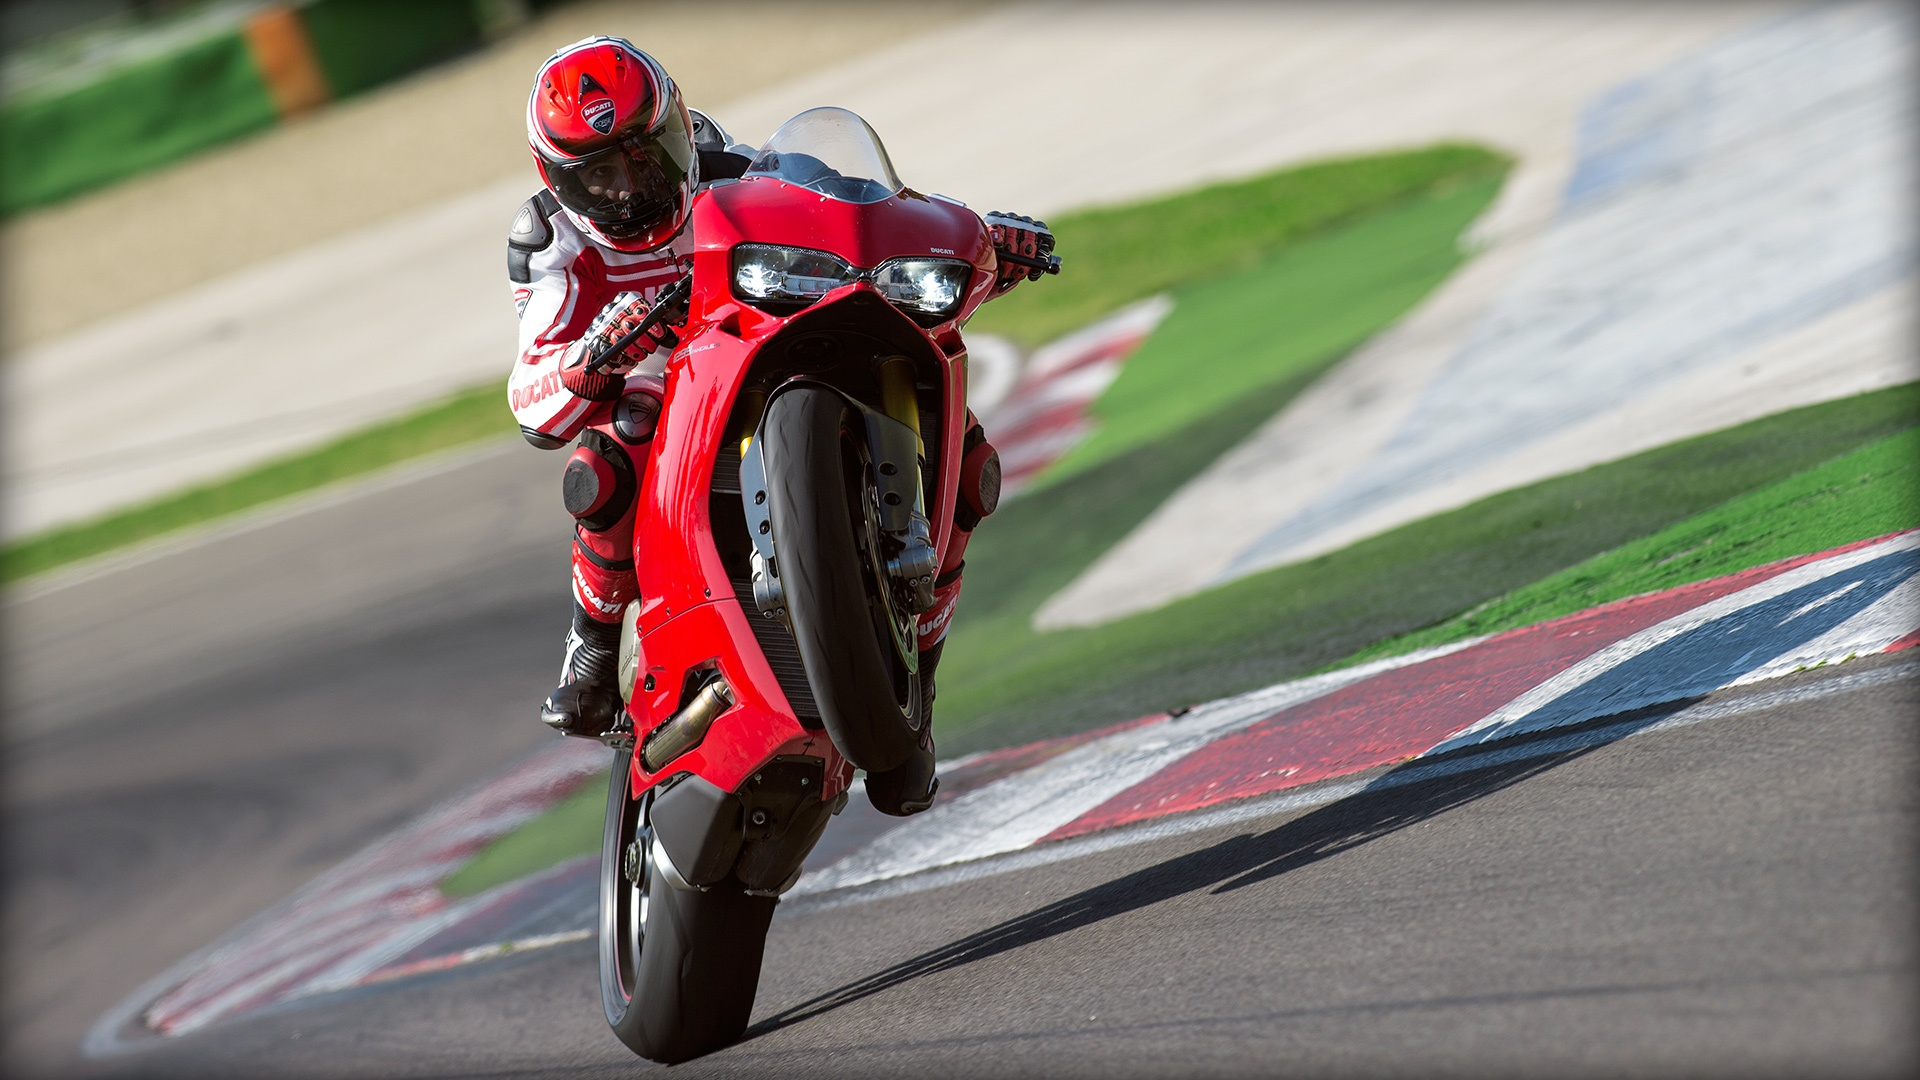 HD Ducati 1299 Panigale S Wallpapers